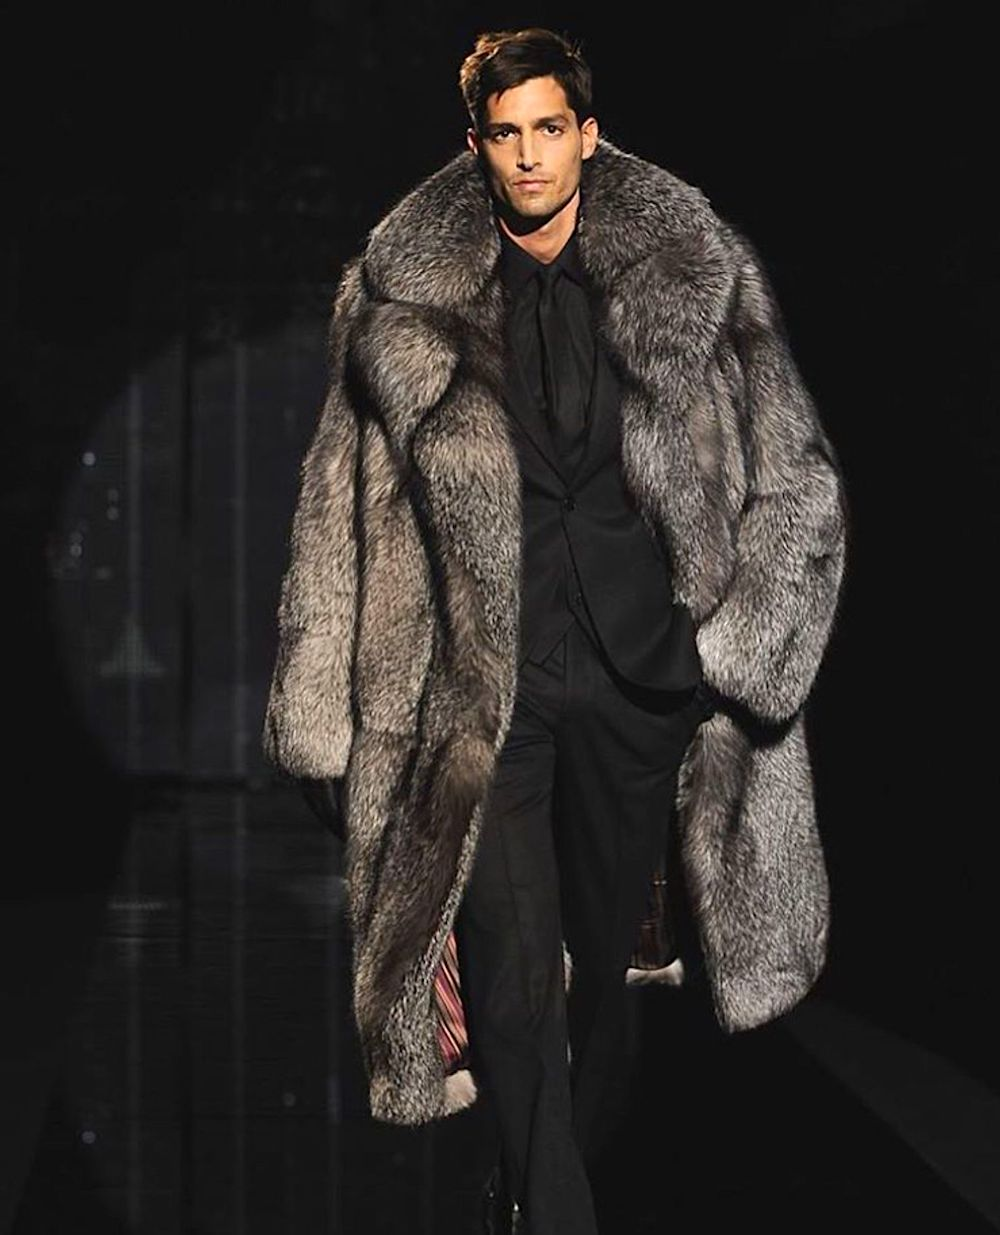 Tom Ford suggests combining a fur coat with a formal suit